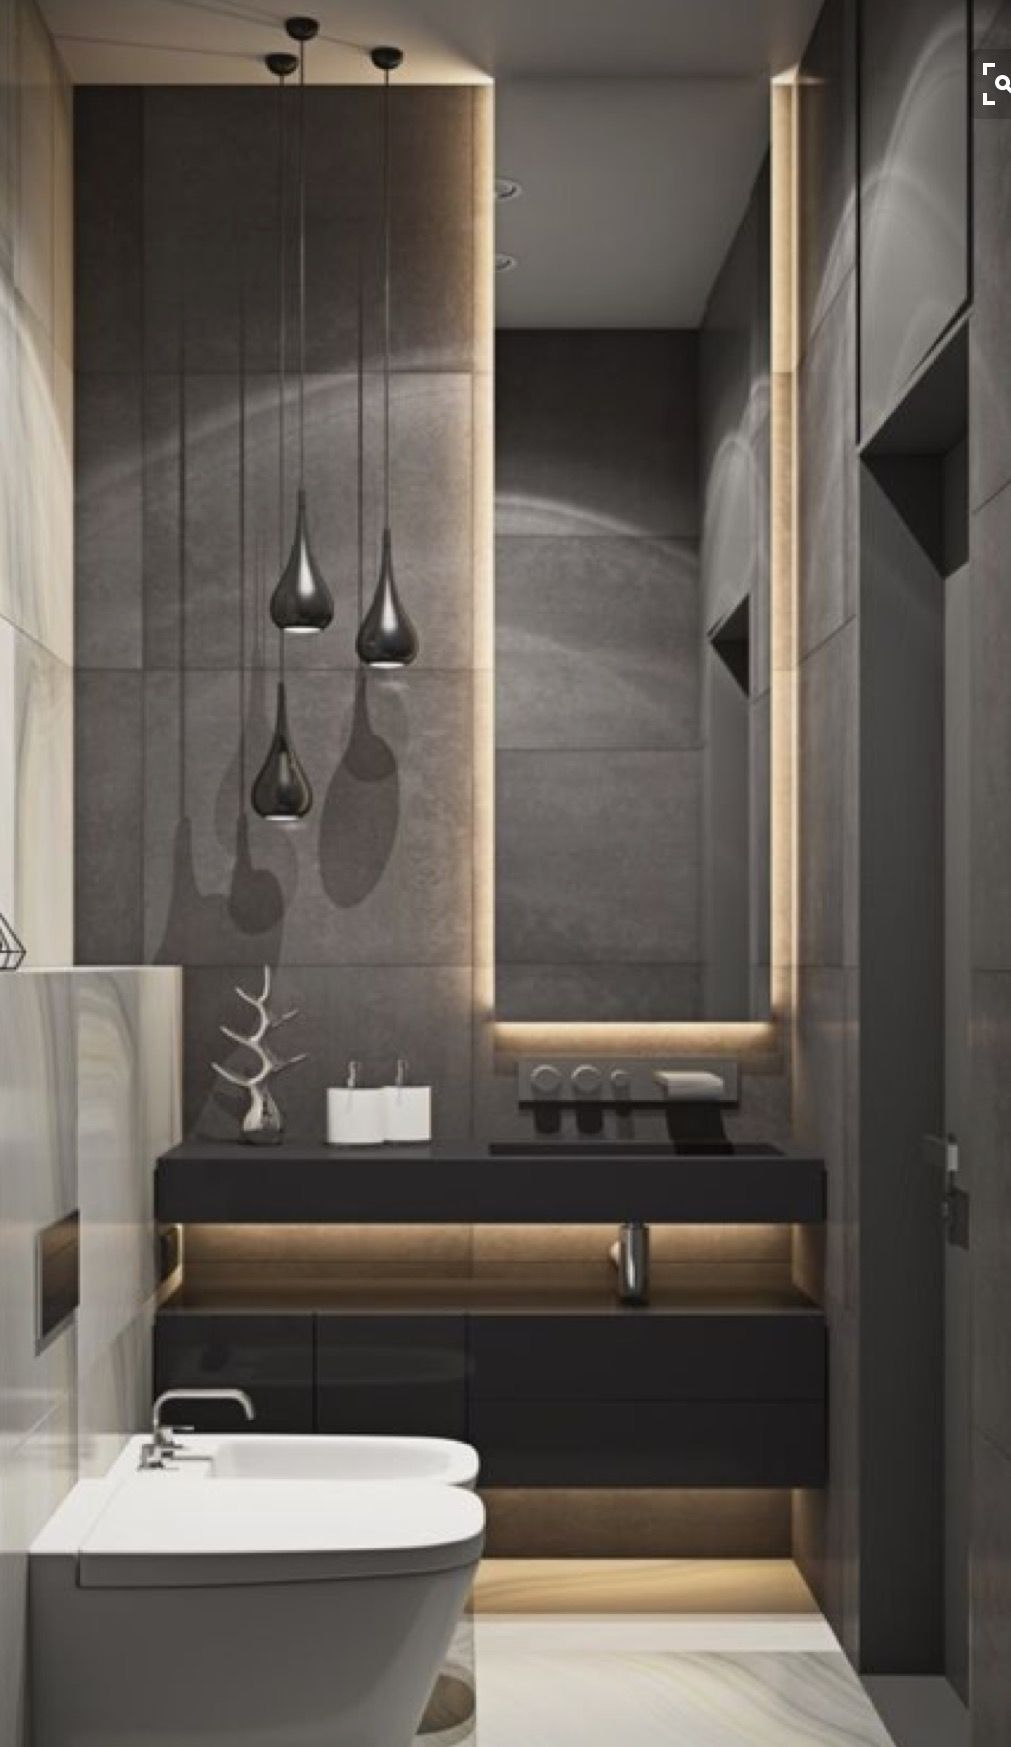 toilette sdb pinterest badezimmer bad und baden. Black Bedroom Furniture Sets. Home Design Ideas